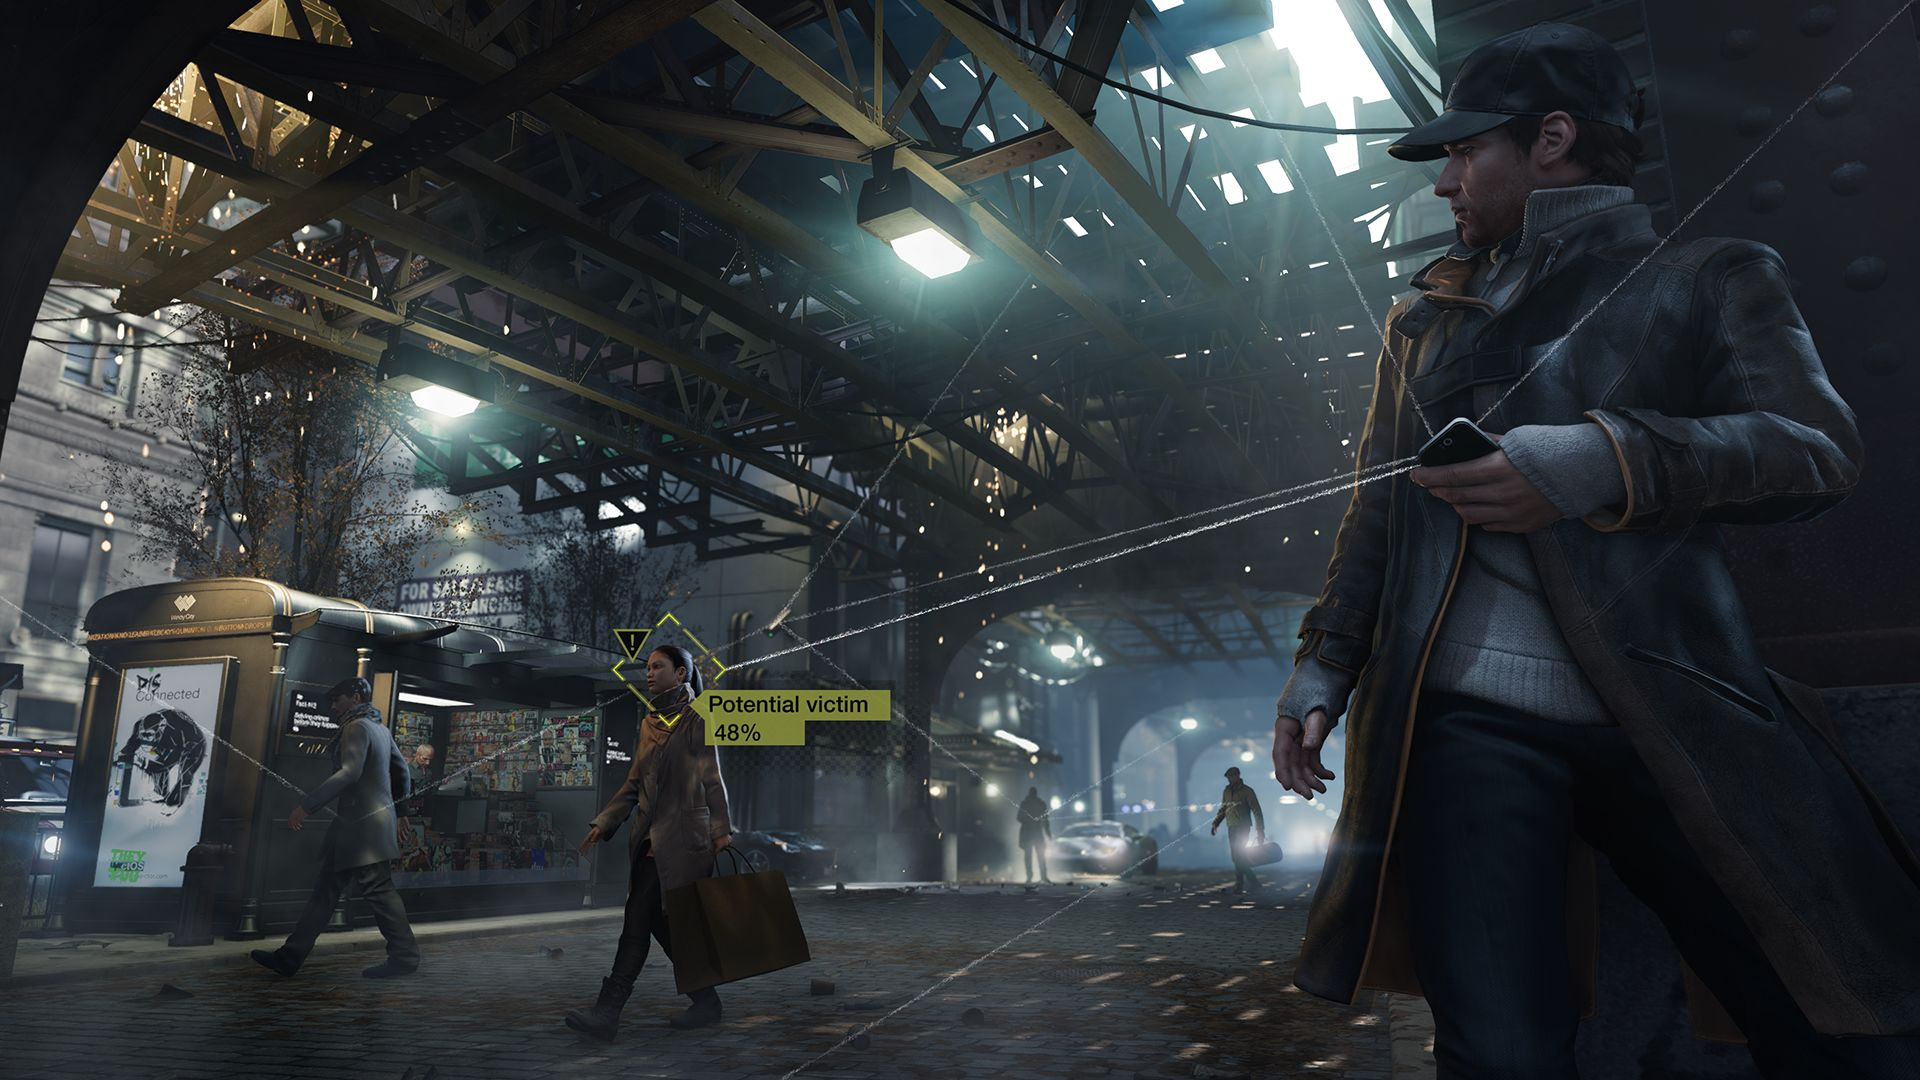 Rumor: PS4 version of Watch_Dogs runs at 1080p, TBD on Xbox One